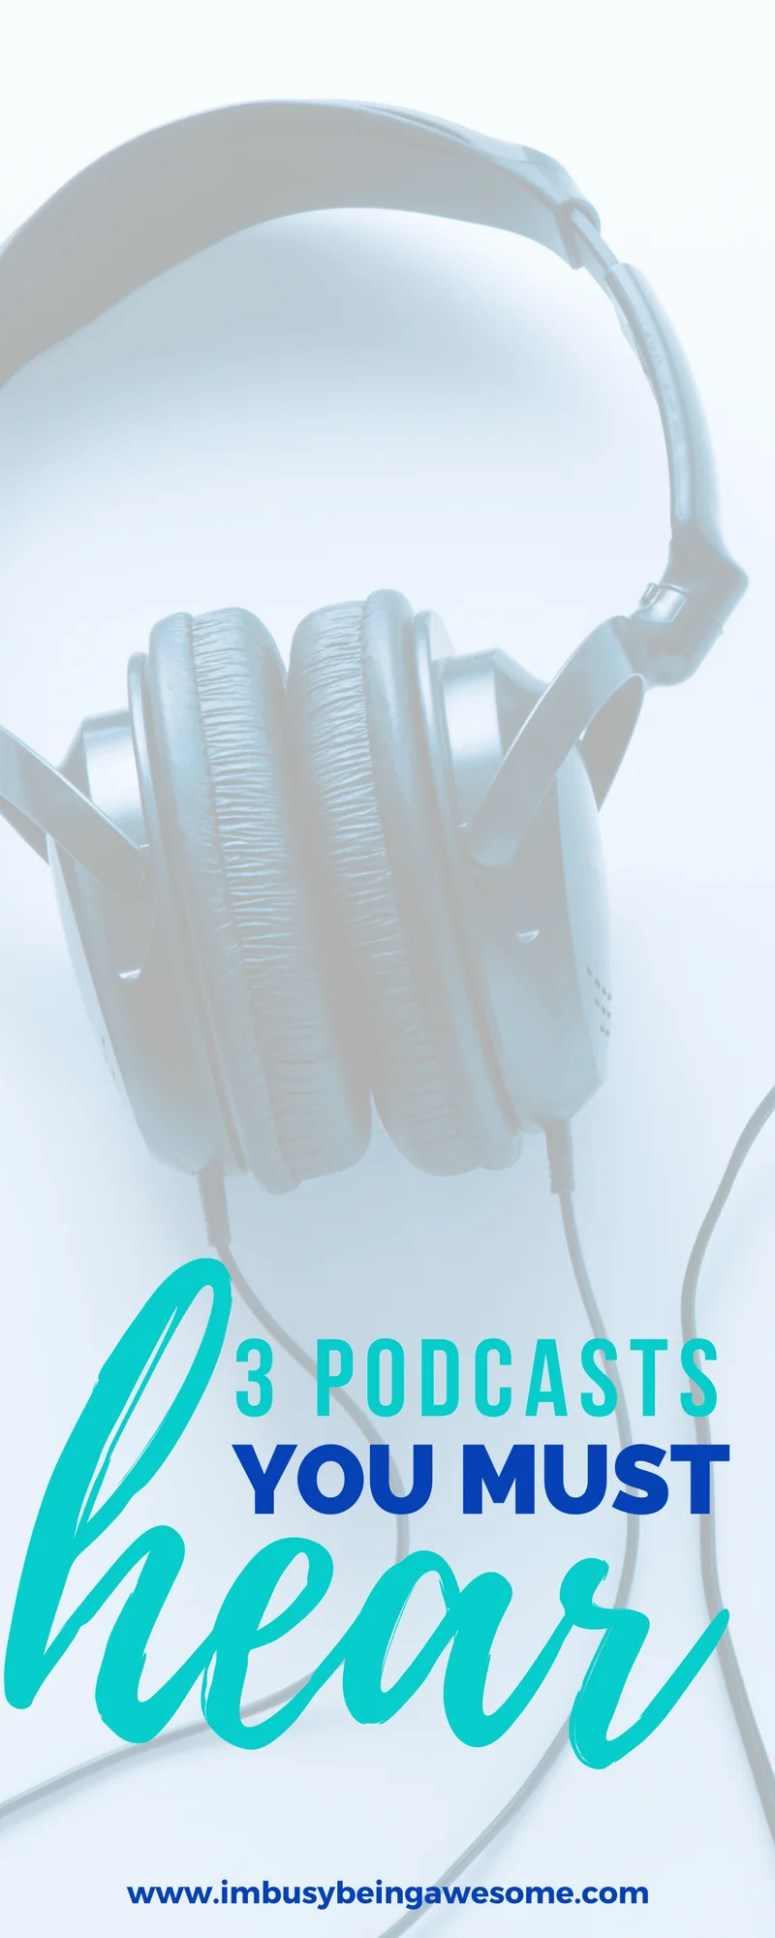 3 top podcasts you will love. Best podcasts, favorite podcasts, #podcast #trypod #inspire #inspiration #happiness #happier #joy #listen #recommendation #sidehustle #entrepreneur #success